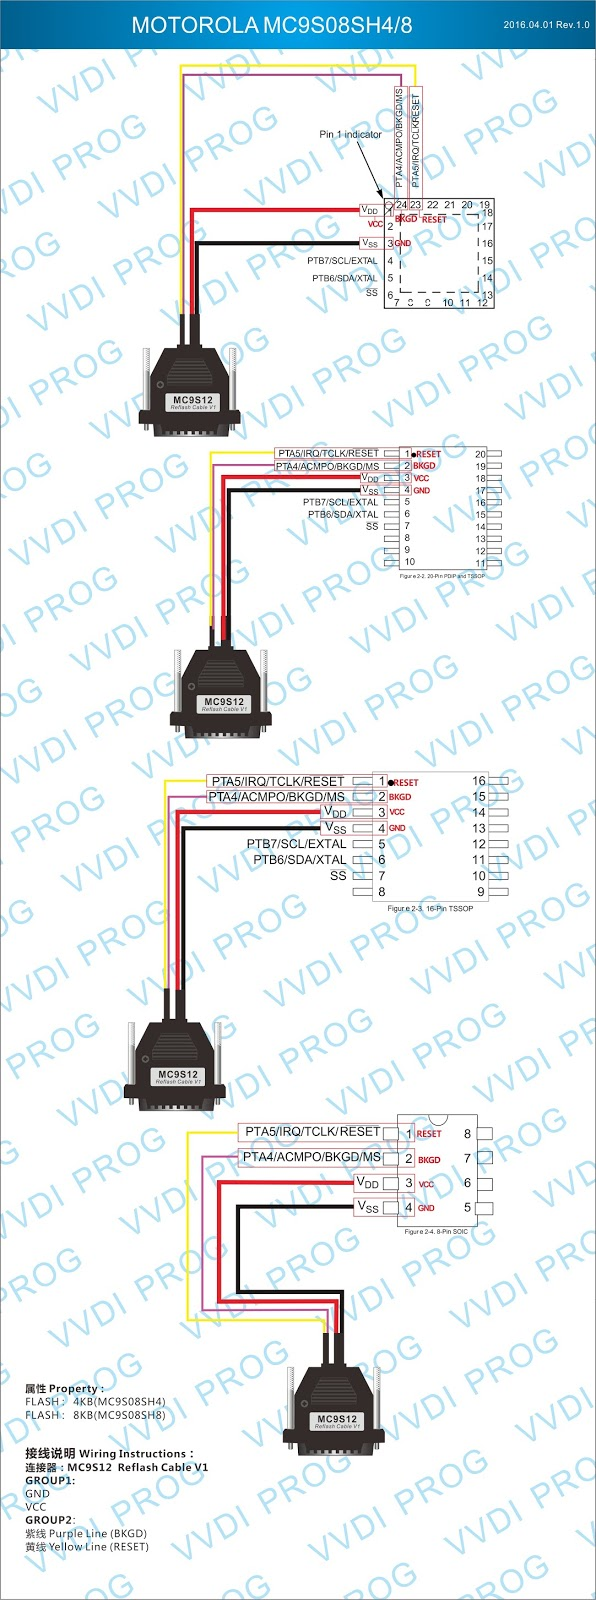 Xhorse Vvdi Prog Wiring Diagram To Ecus Mcus Updating Obd365com Mercedes Benz W220 Motorola Mc9s12hz